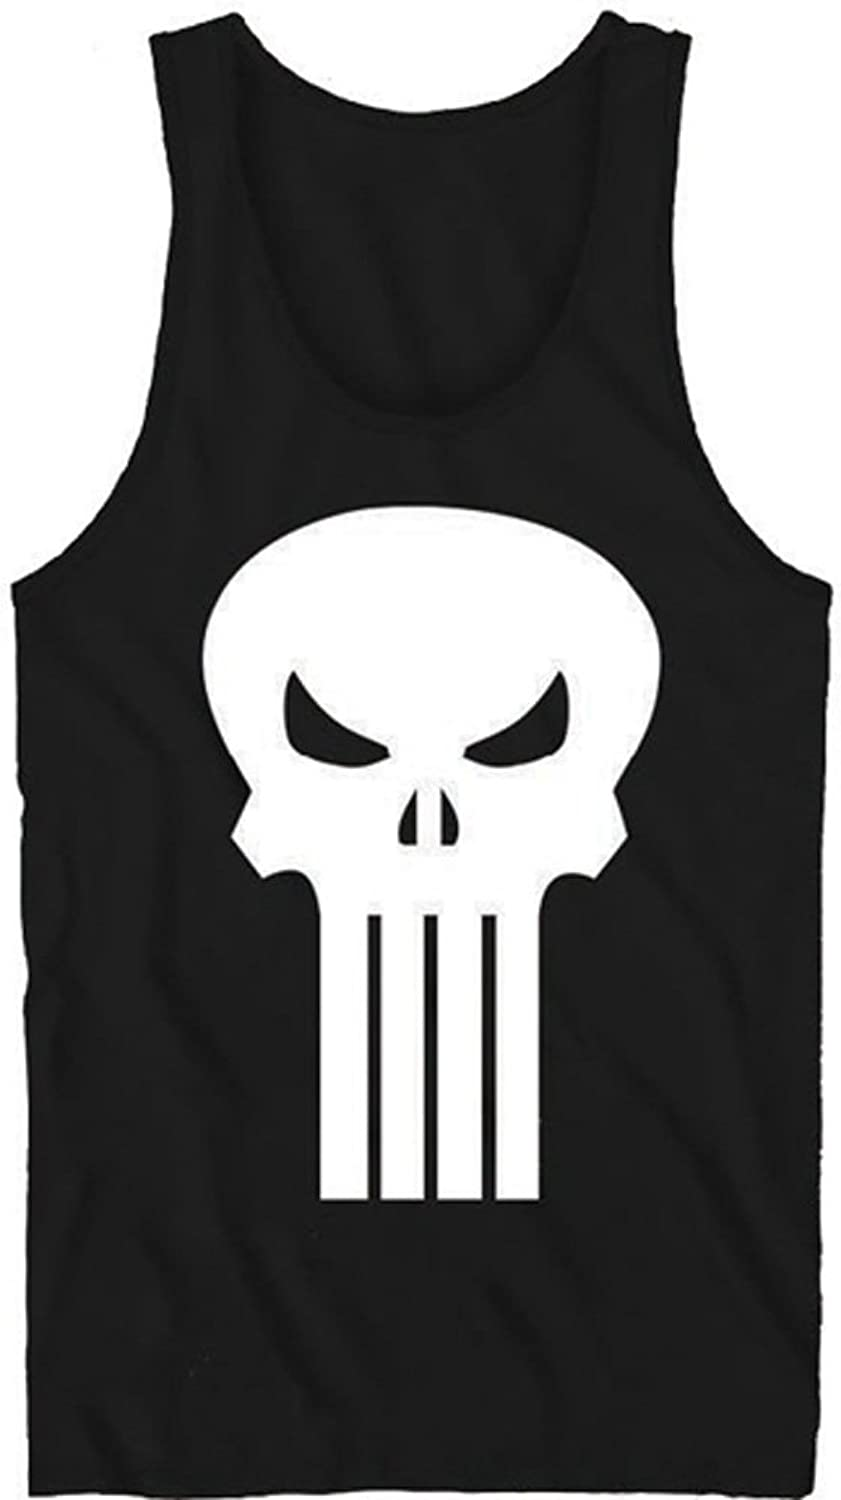 Next Level The Jersey Tank - White - S